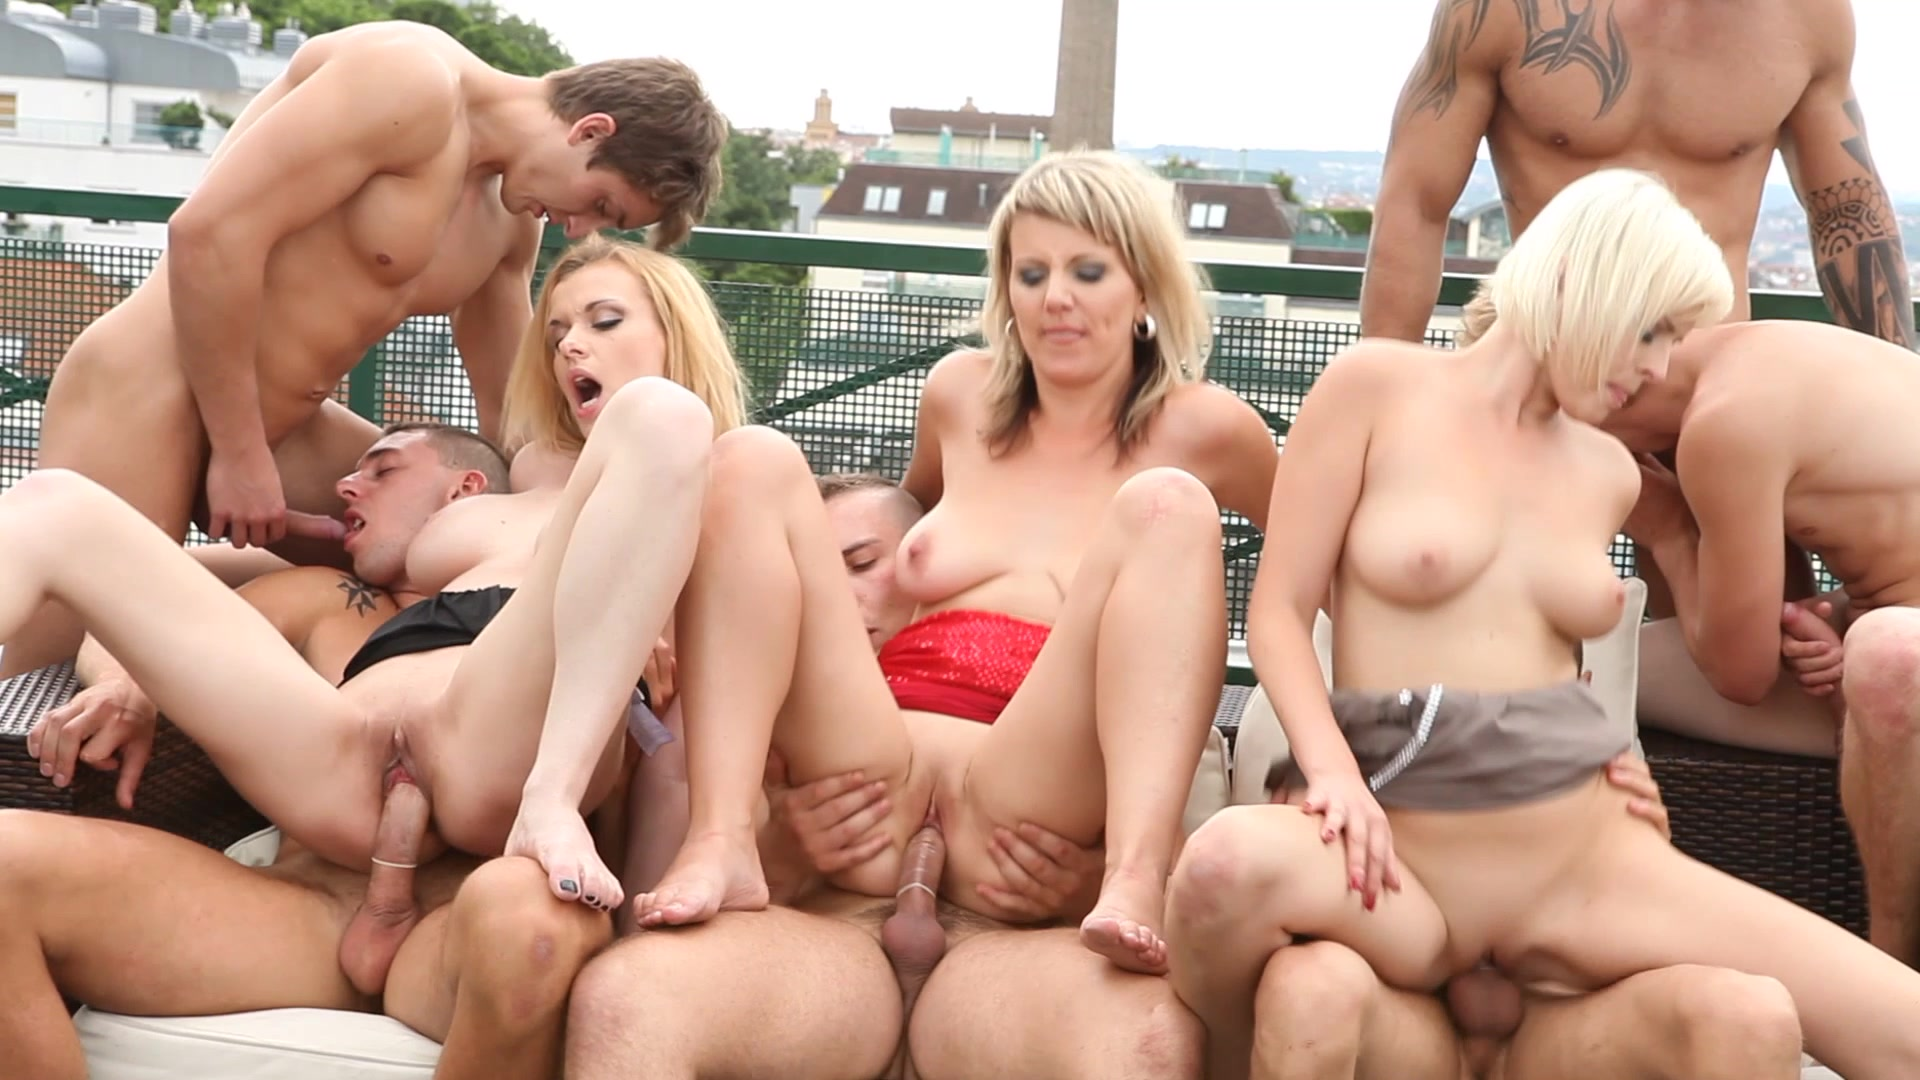 Group sex young hotties nasty, naked woman on web